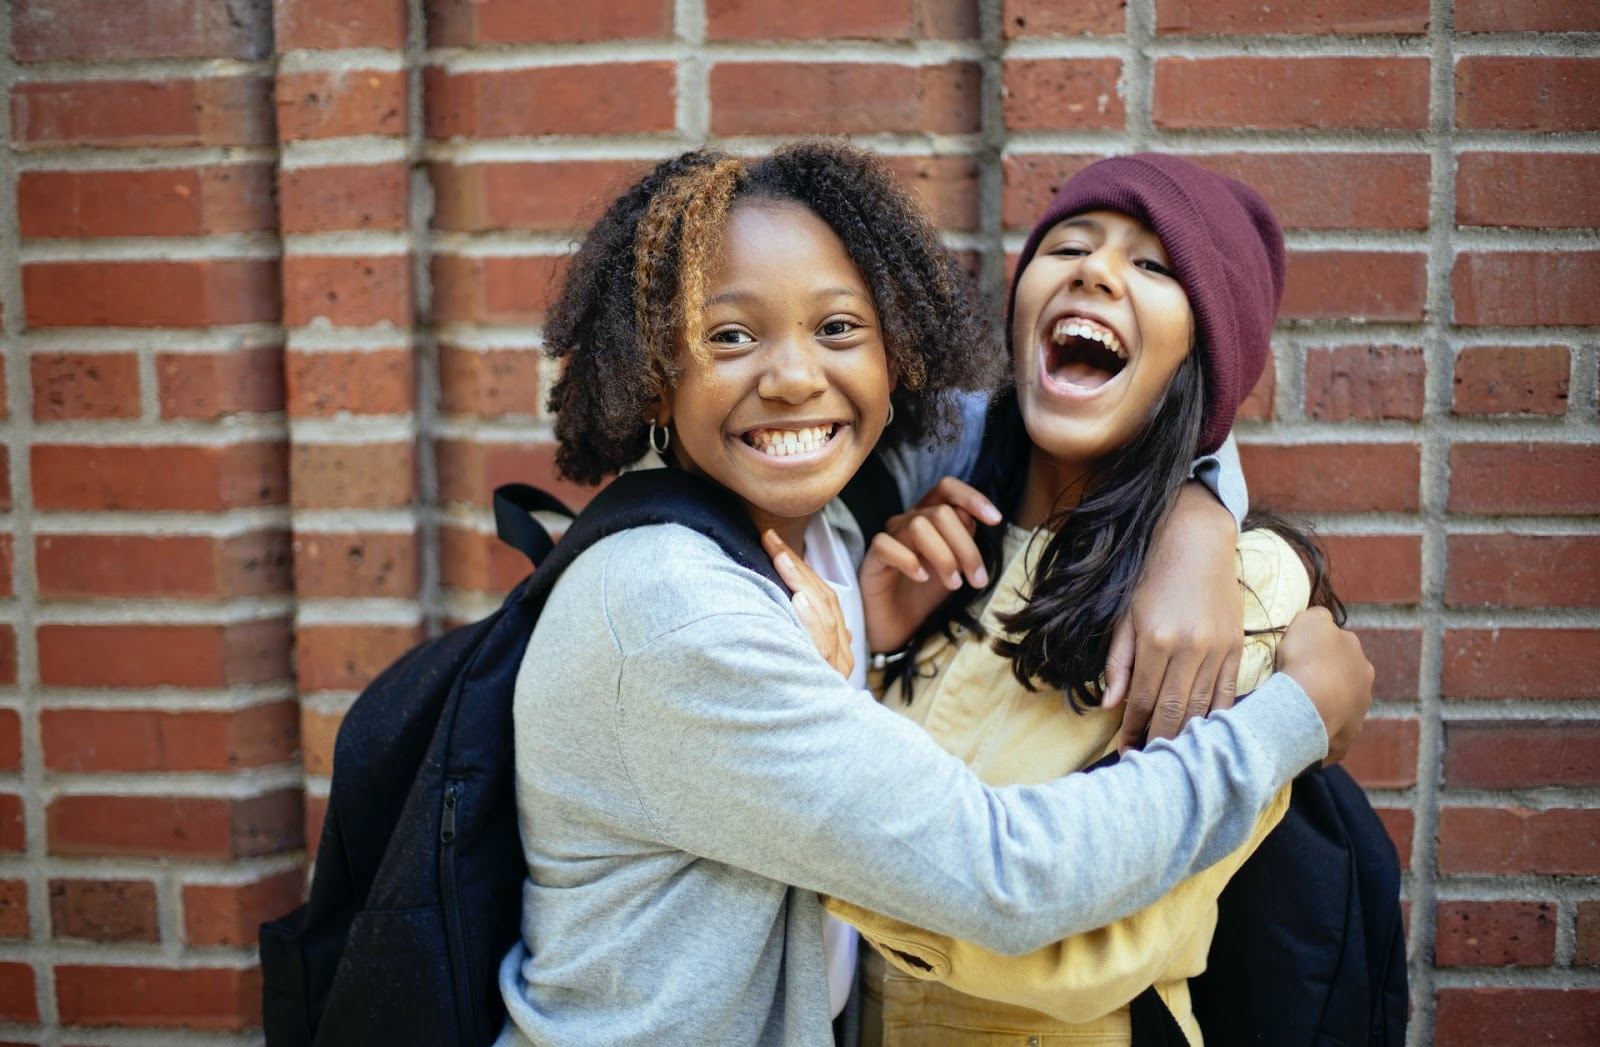 Two young girls of color hug and laugh while wearing backpacks with a red brick backdrop.